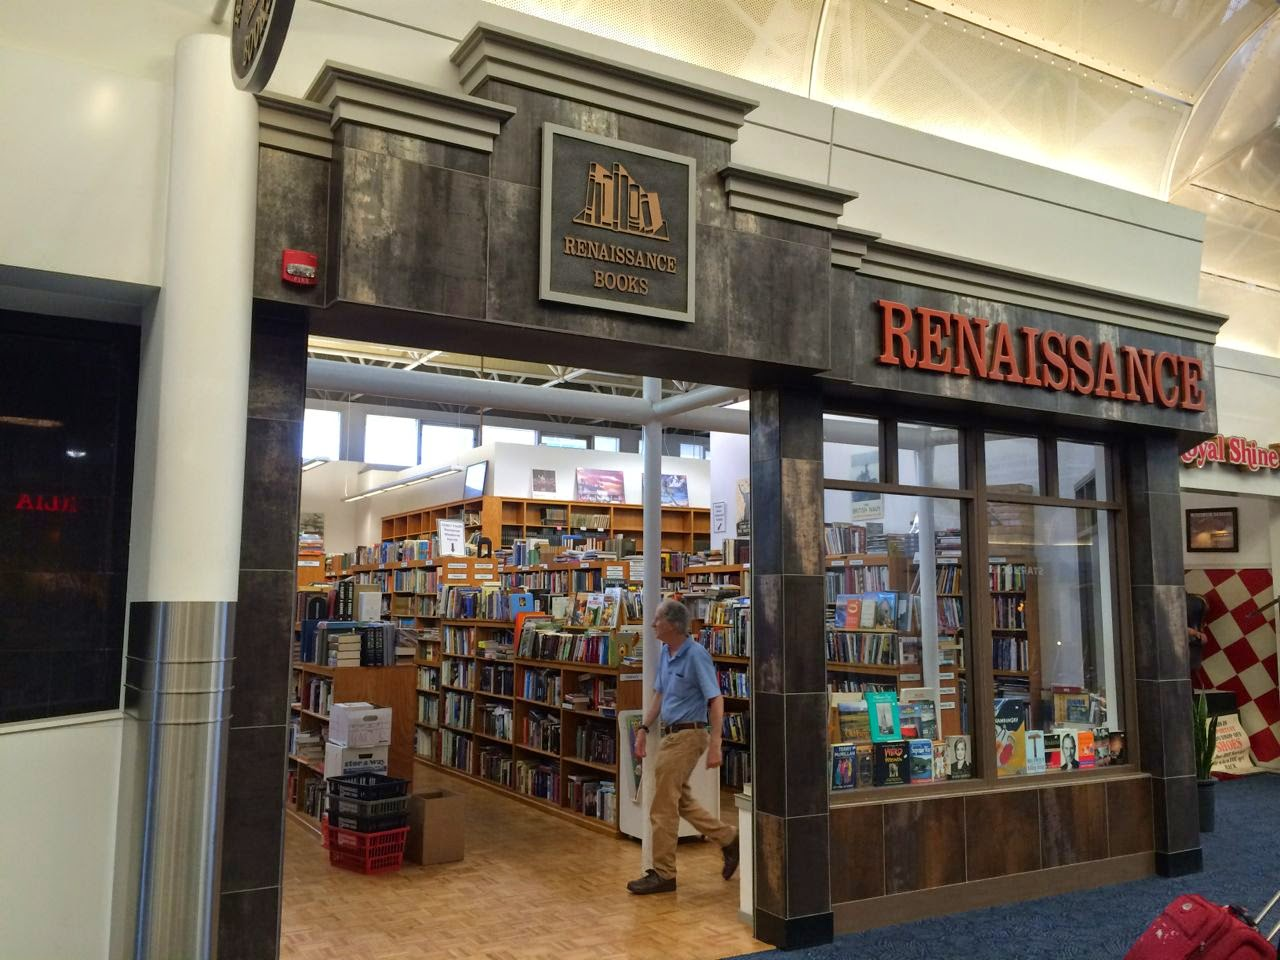 Airport Attractions Browse Used Books in Milwaukee's Renaissance Book Shop